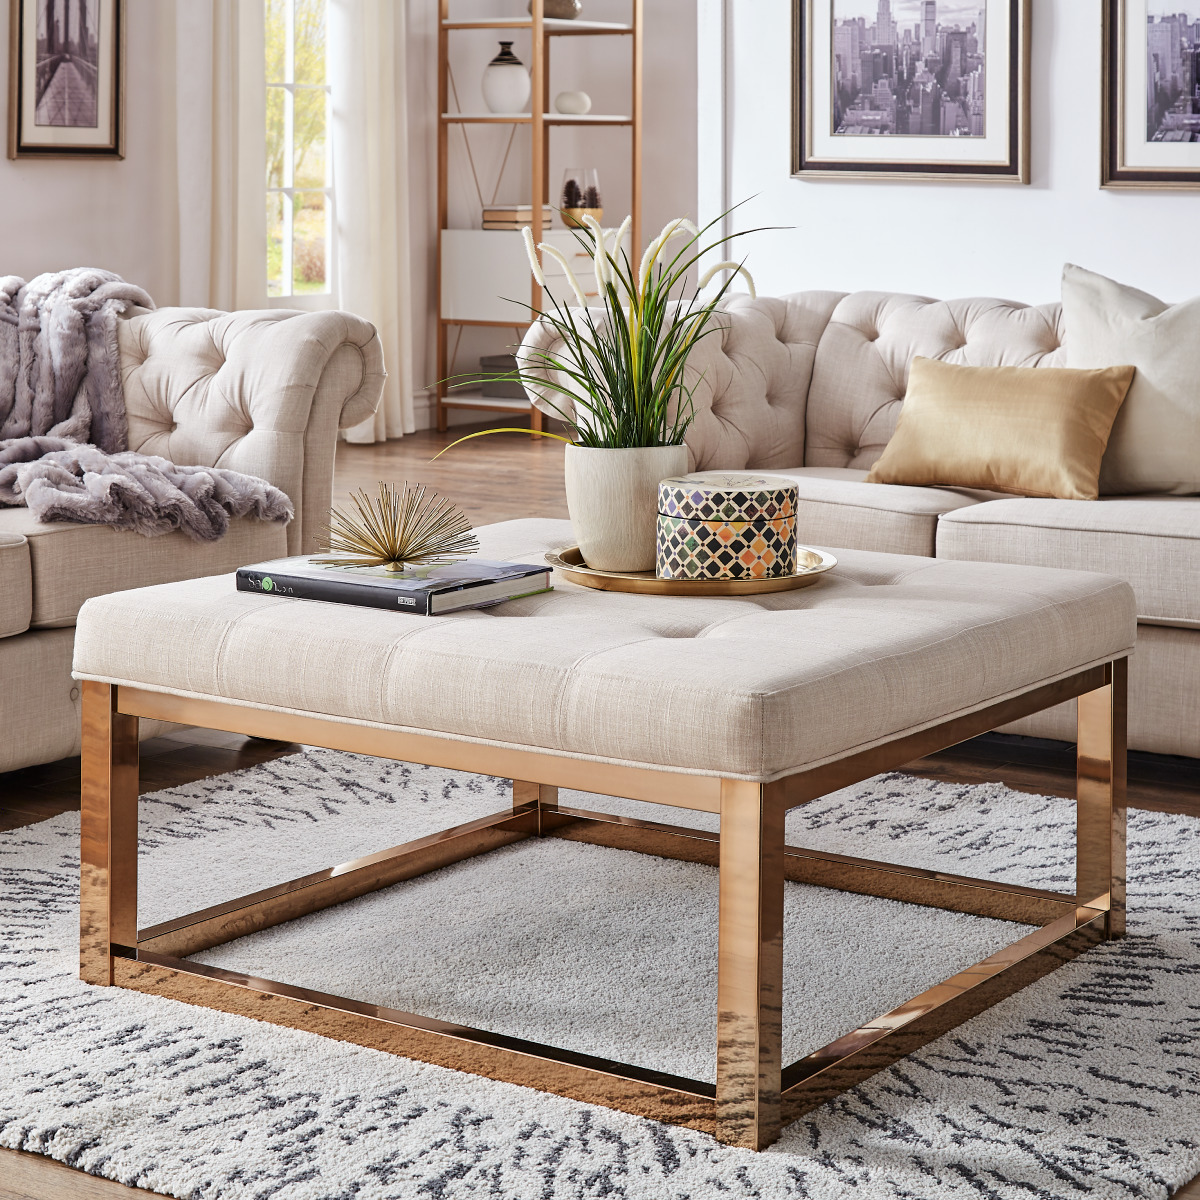 weston home libby dimpled tufted cushion ottoman coffee table with champagne gold straight base beige linen